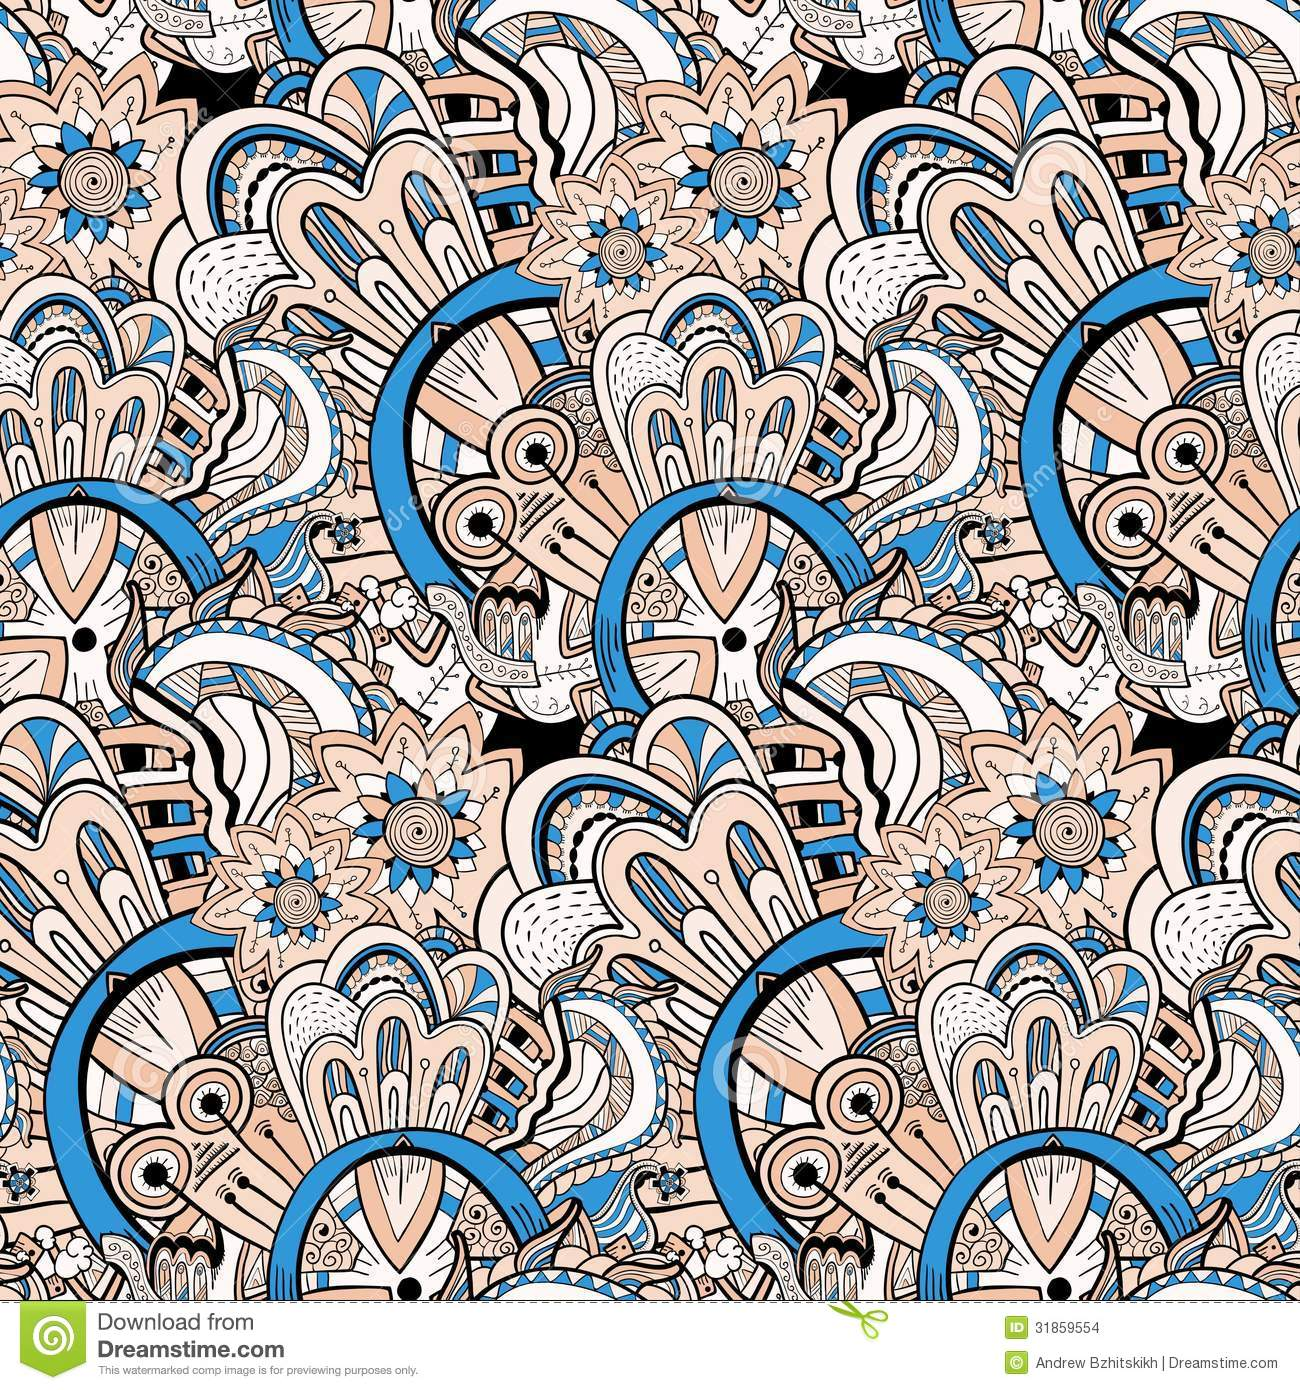 Can I Put Wallpaper On Top Of Wallpaper: Seamless Abstract Hand-drawn Pattern, Steampunk Background